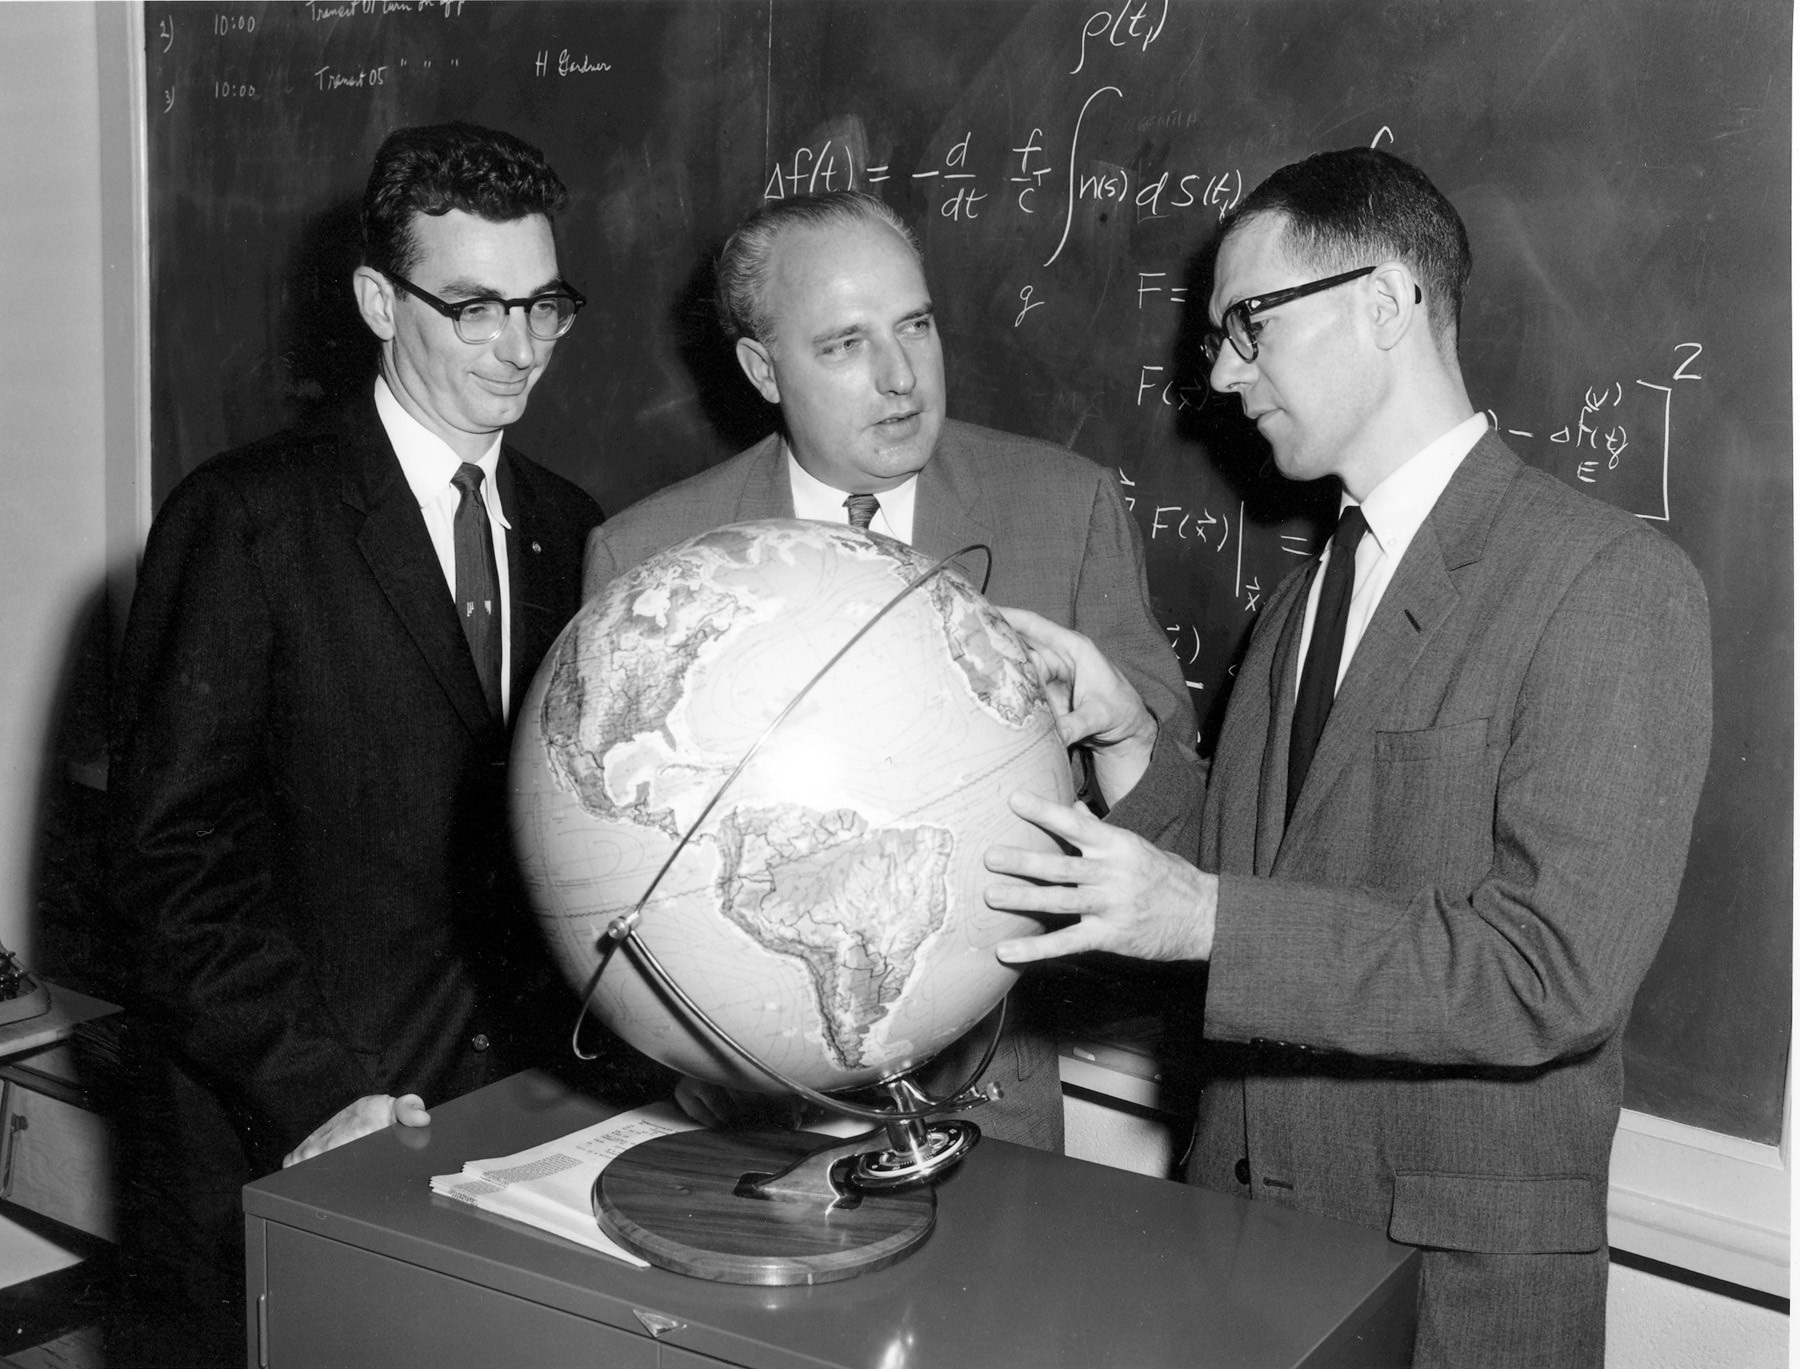 "Mathematician Bill Guier (l) and physicist George Weiffenbach (r), told APL Research Center director Frank T. McClure (c), about their success using Doppler tracking for satellites. ""McClure's brain started going into fast forward,"" remembered John Dassoulas. ""Knowing the navigational challenges the U.S. Navy faced, McClure said, 'Well, if you can find out where the satellite is, you ought to be able to turn that problem upside down and find out where you are.' """